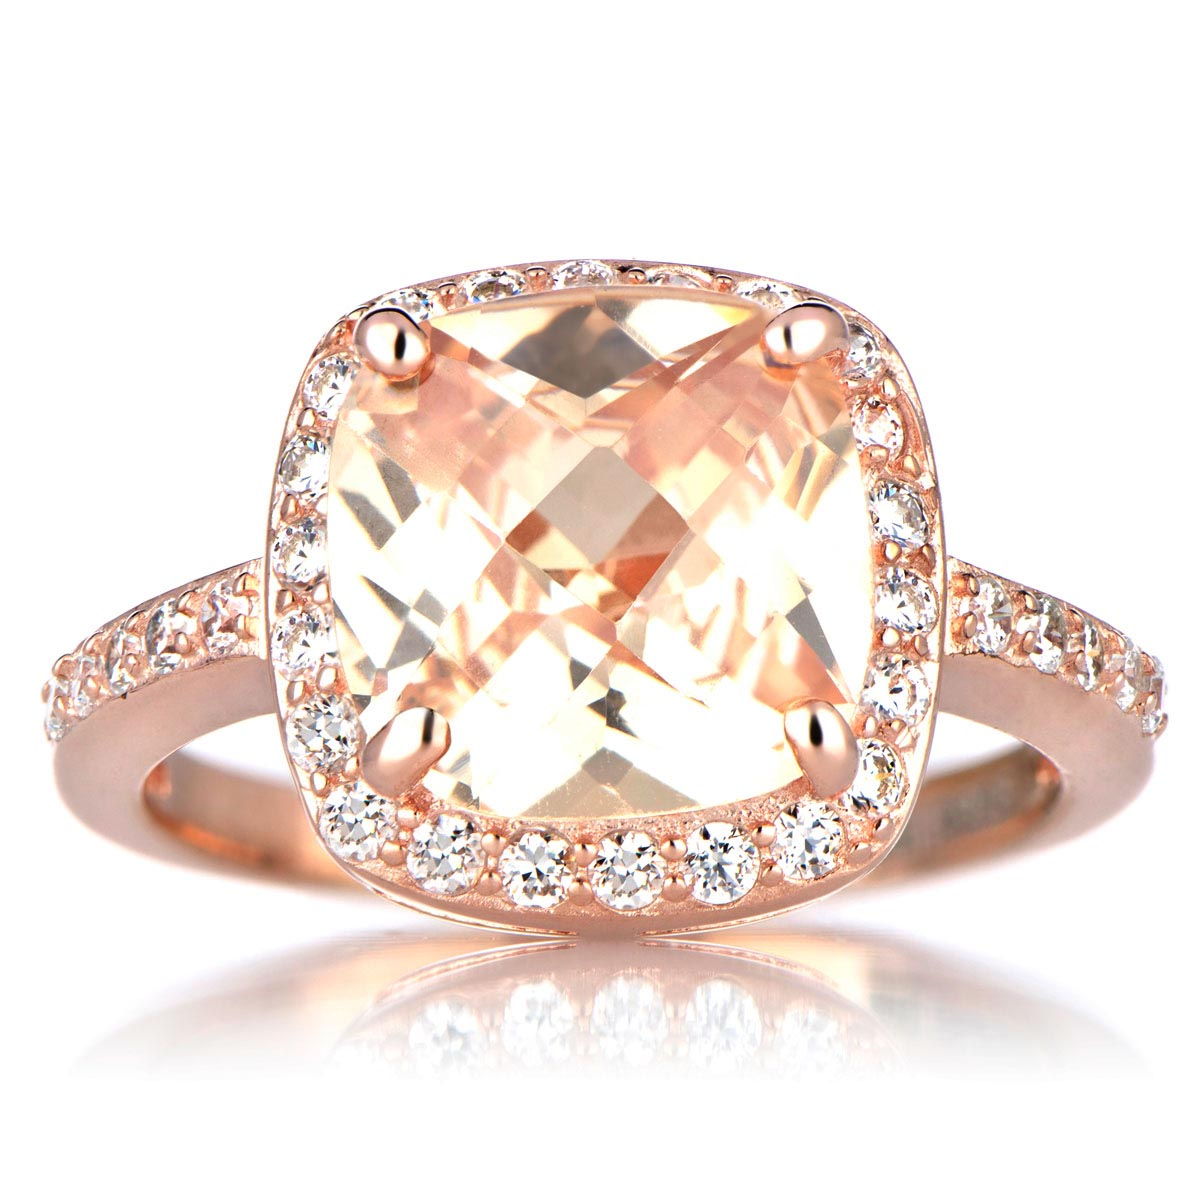 ... Engagement Ring - Peach CZ. Roll Off Image to Close Zoom Window